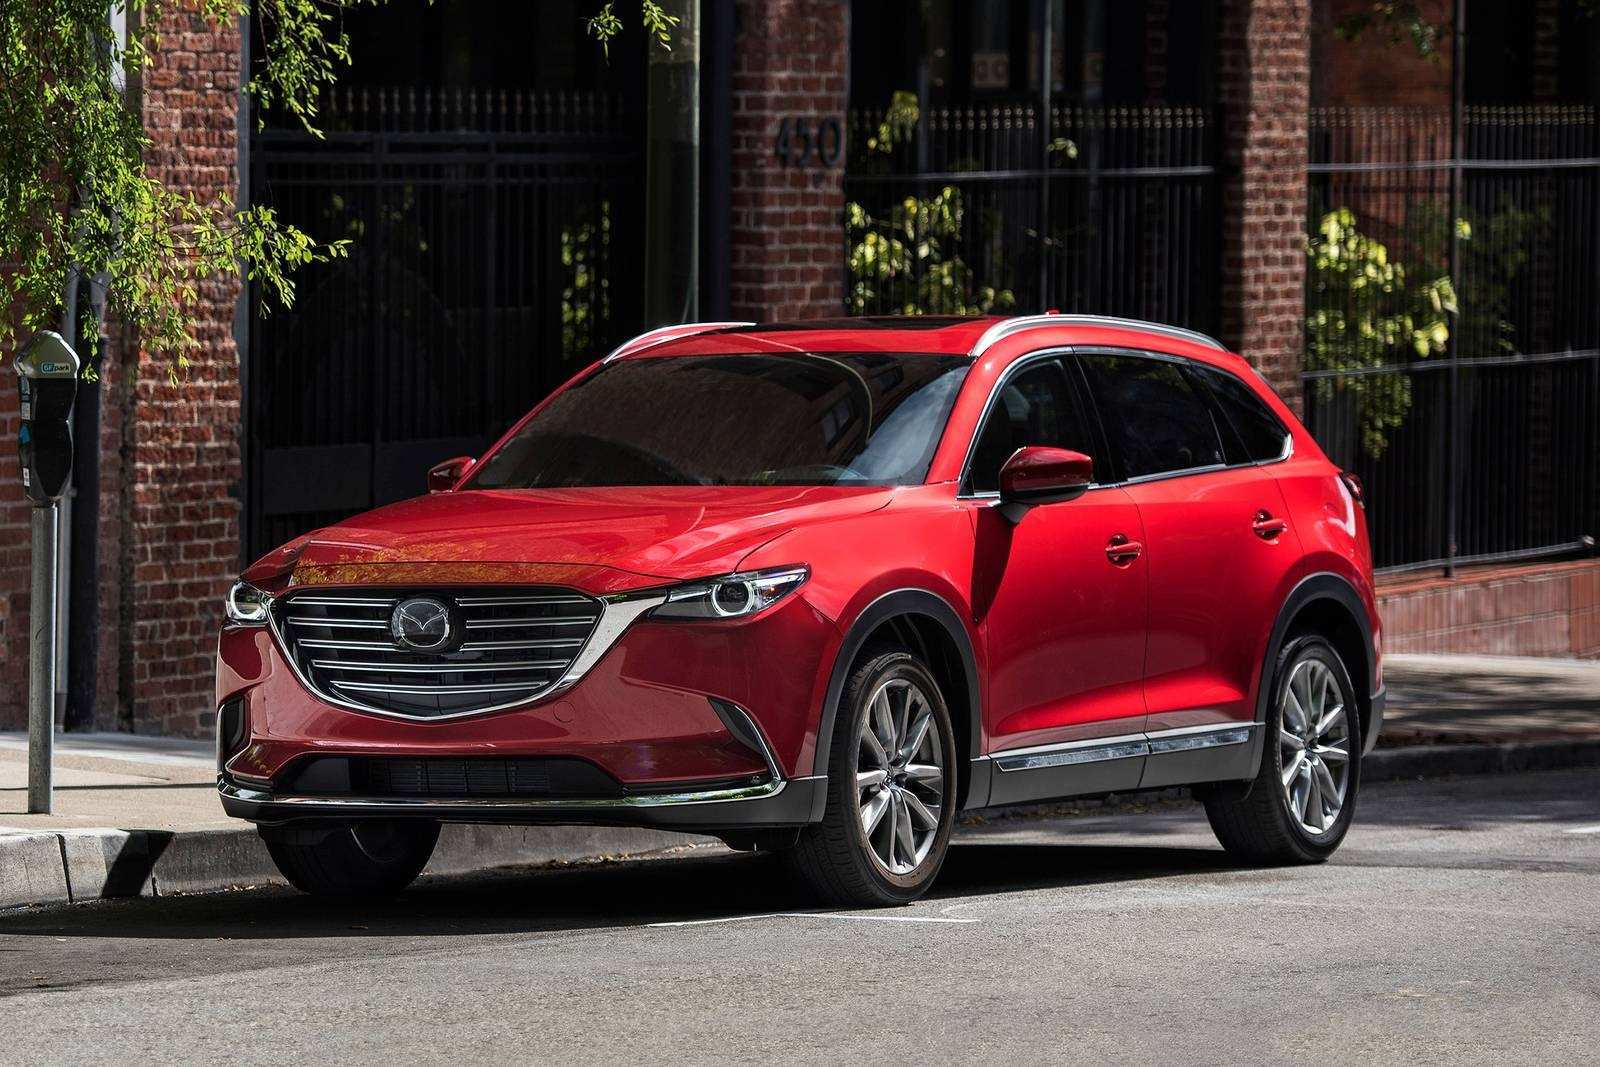 40 The Best 2019 Mazda CX 9s History